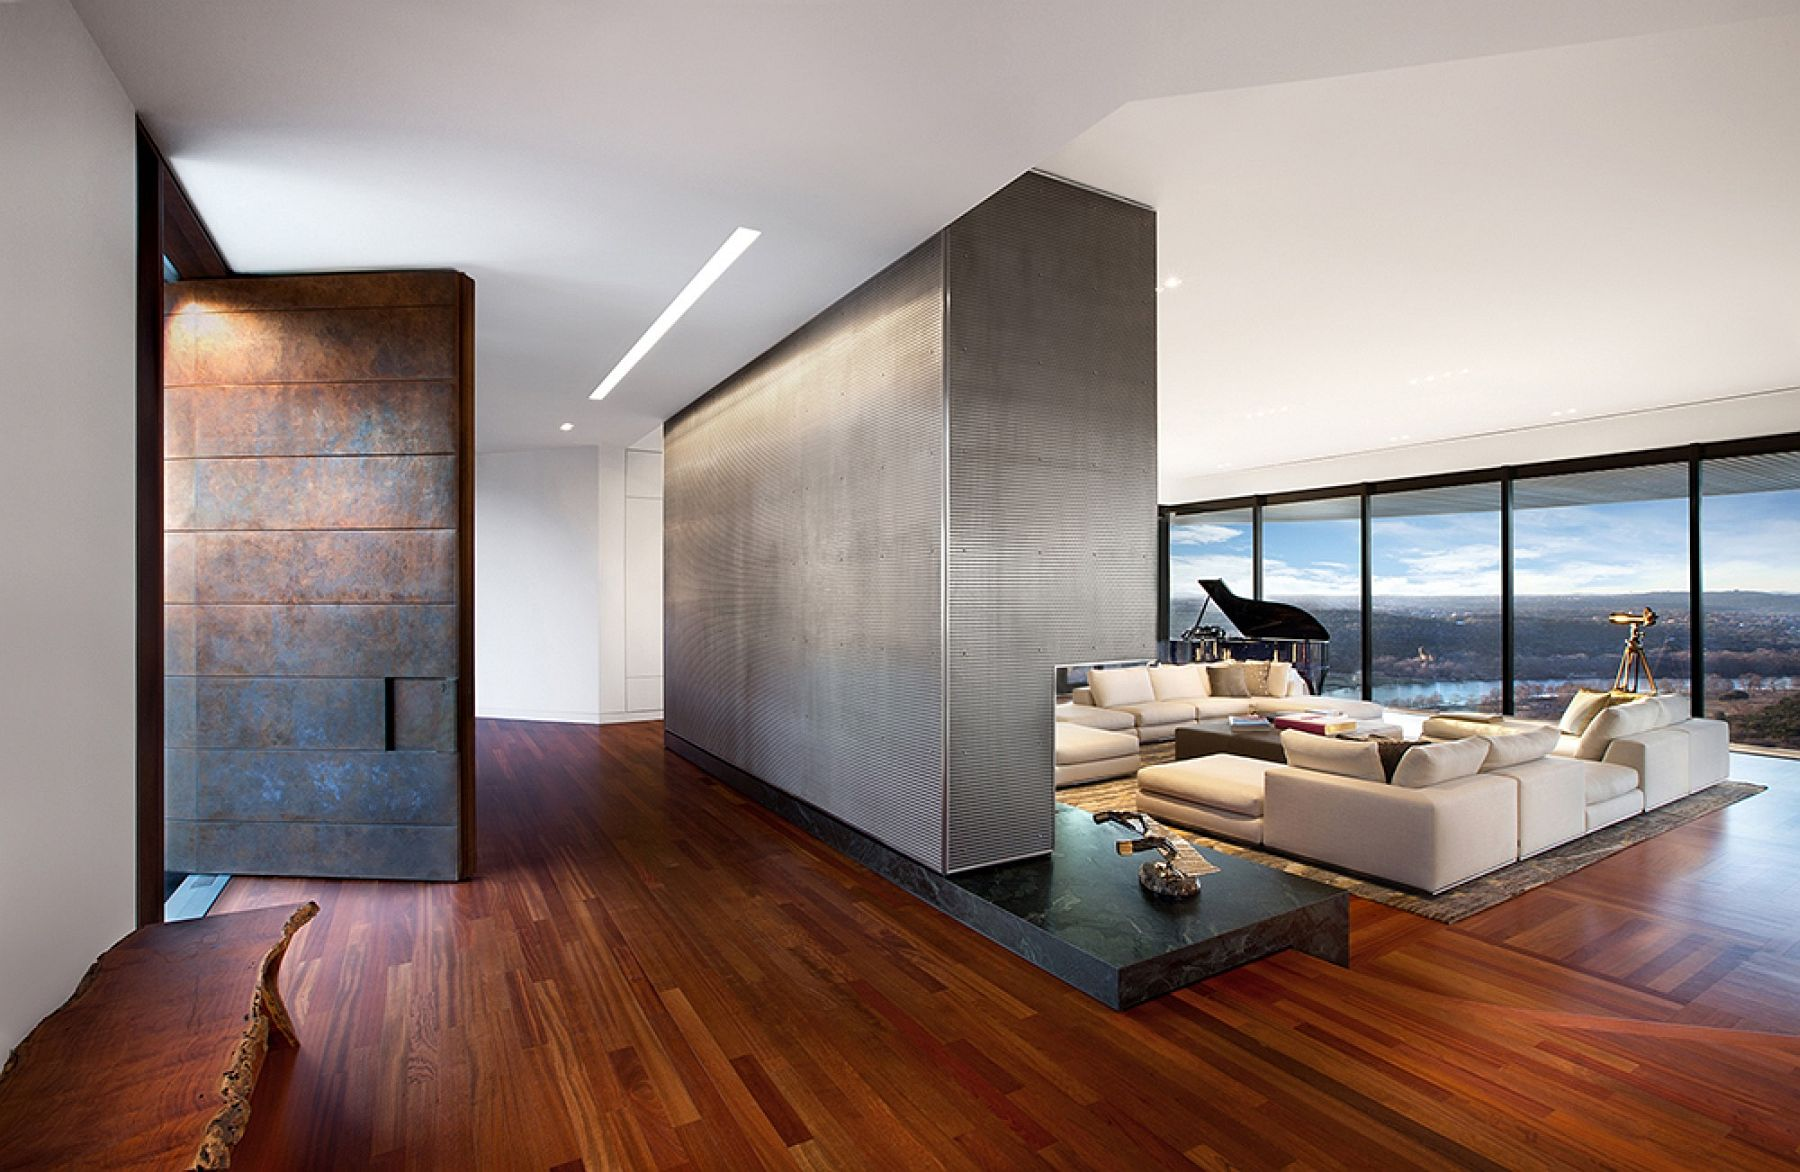 Design of the new entrance and fireplace hides the views and reveals them gradually